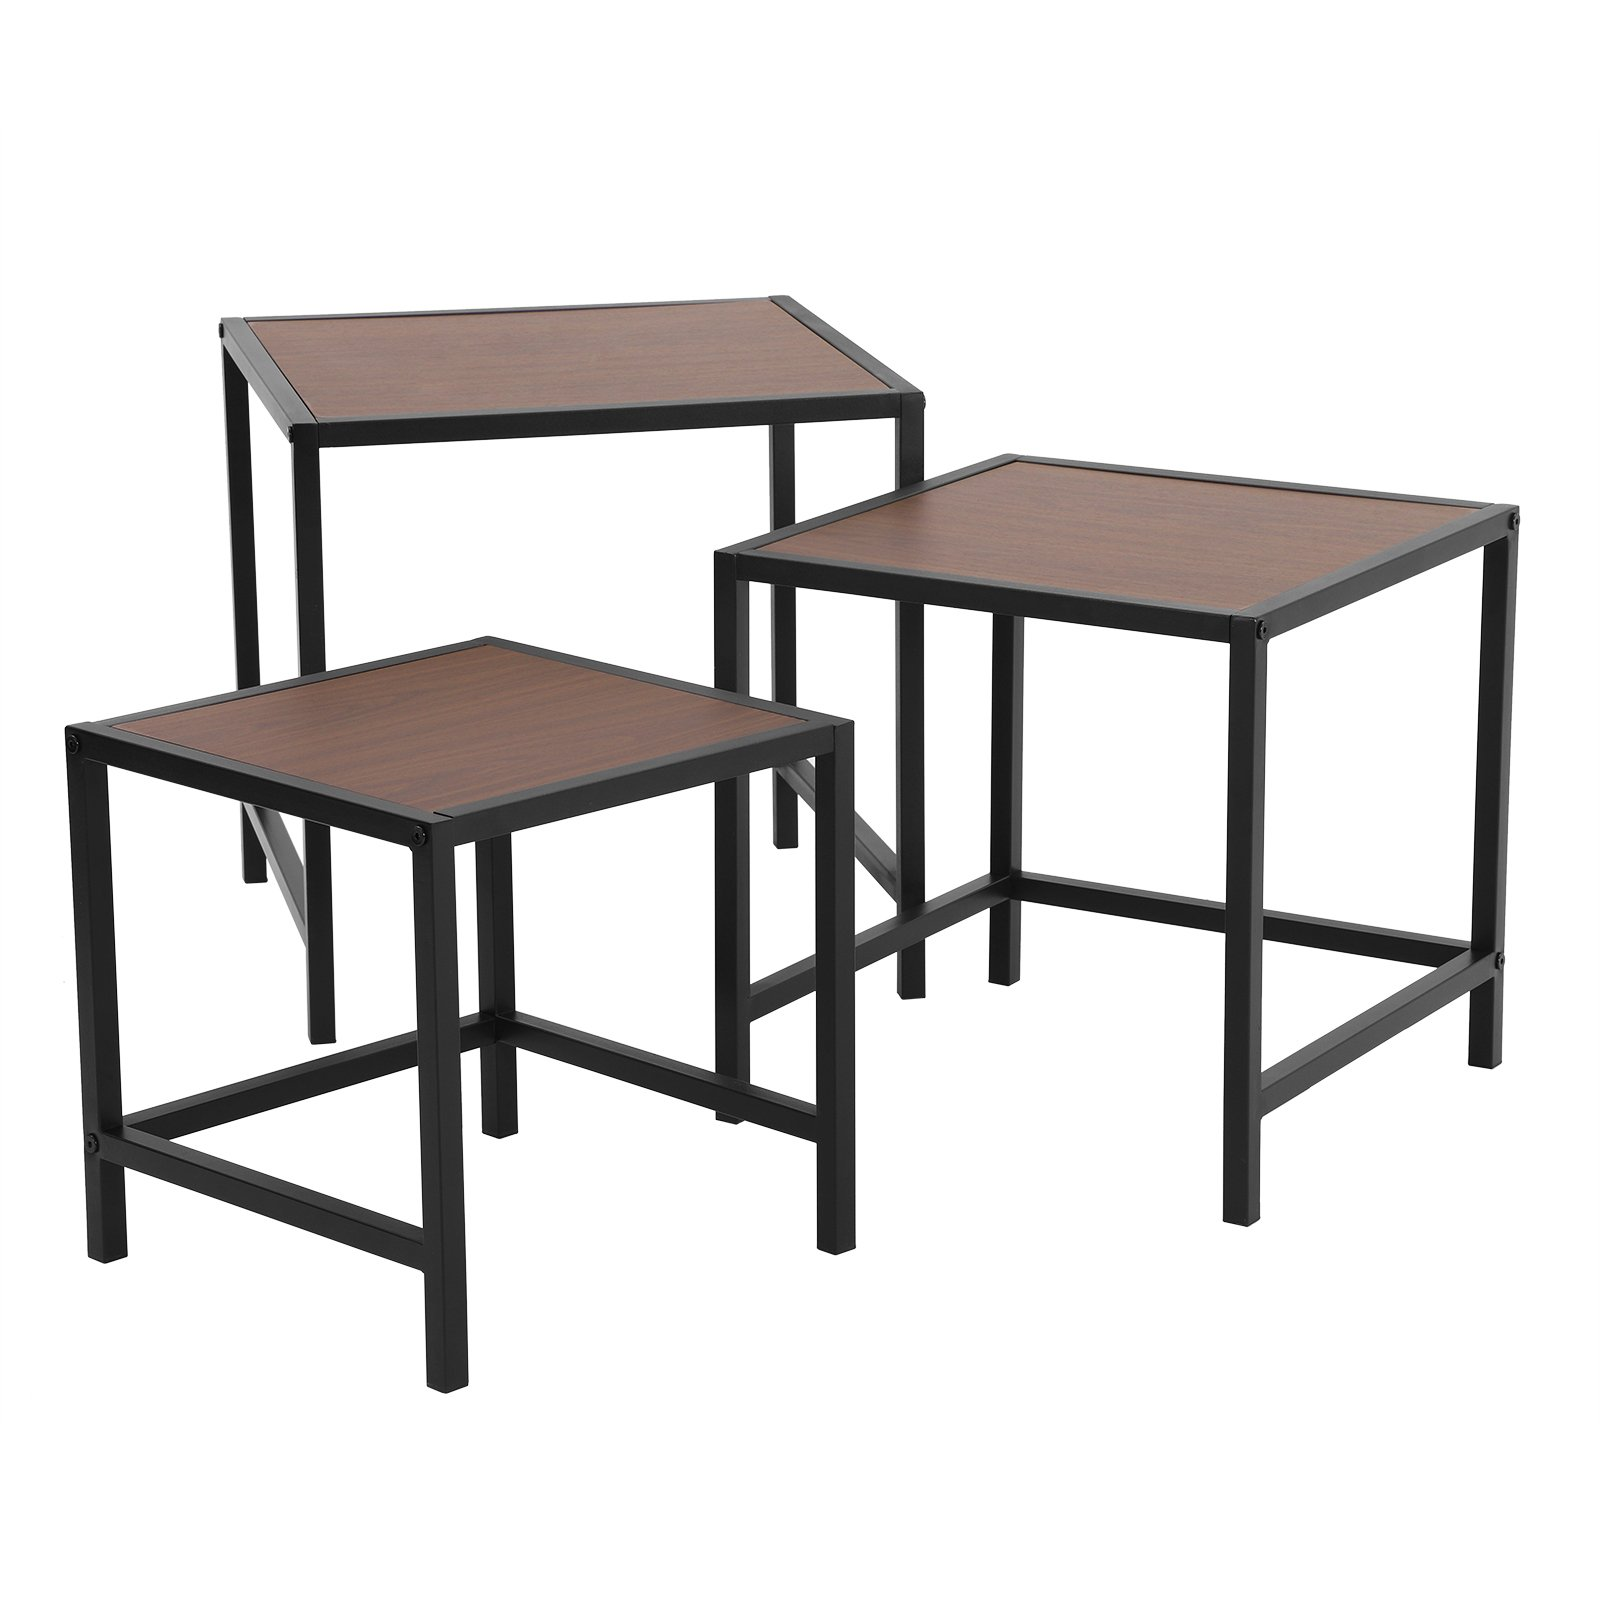 SONGMICS Nesting Coffee Table, 3-Piece End Side Table, for Living Room, Small Space, Easy Assembly, ULNT03BZ